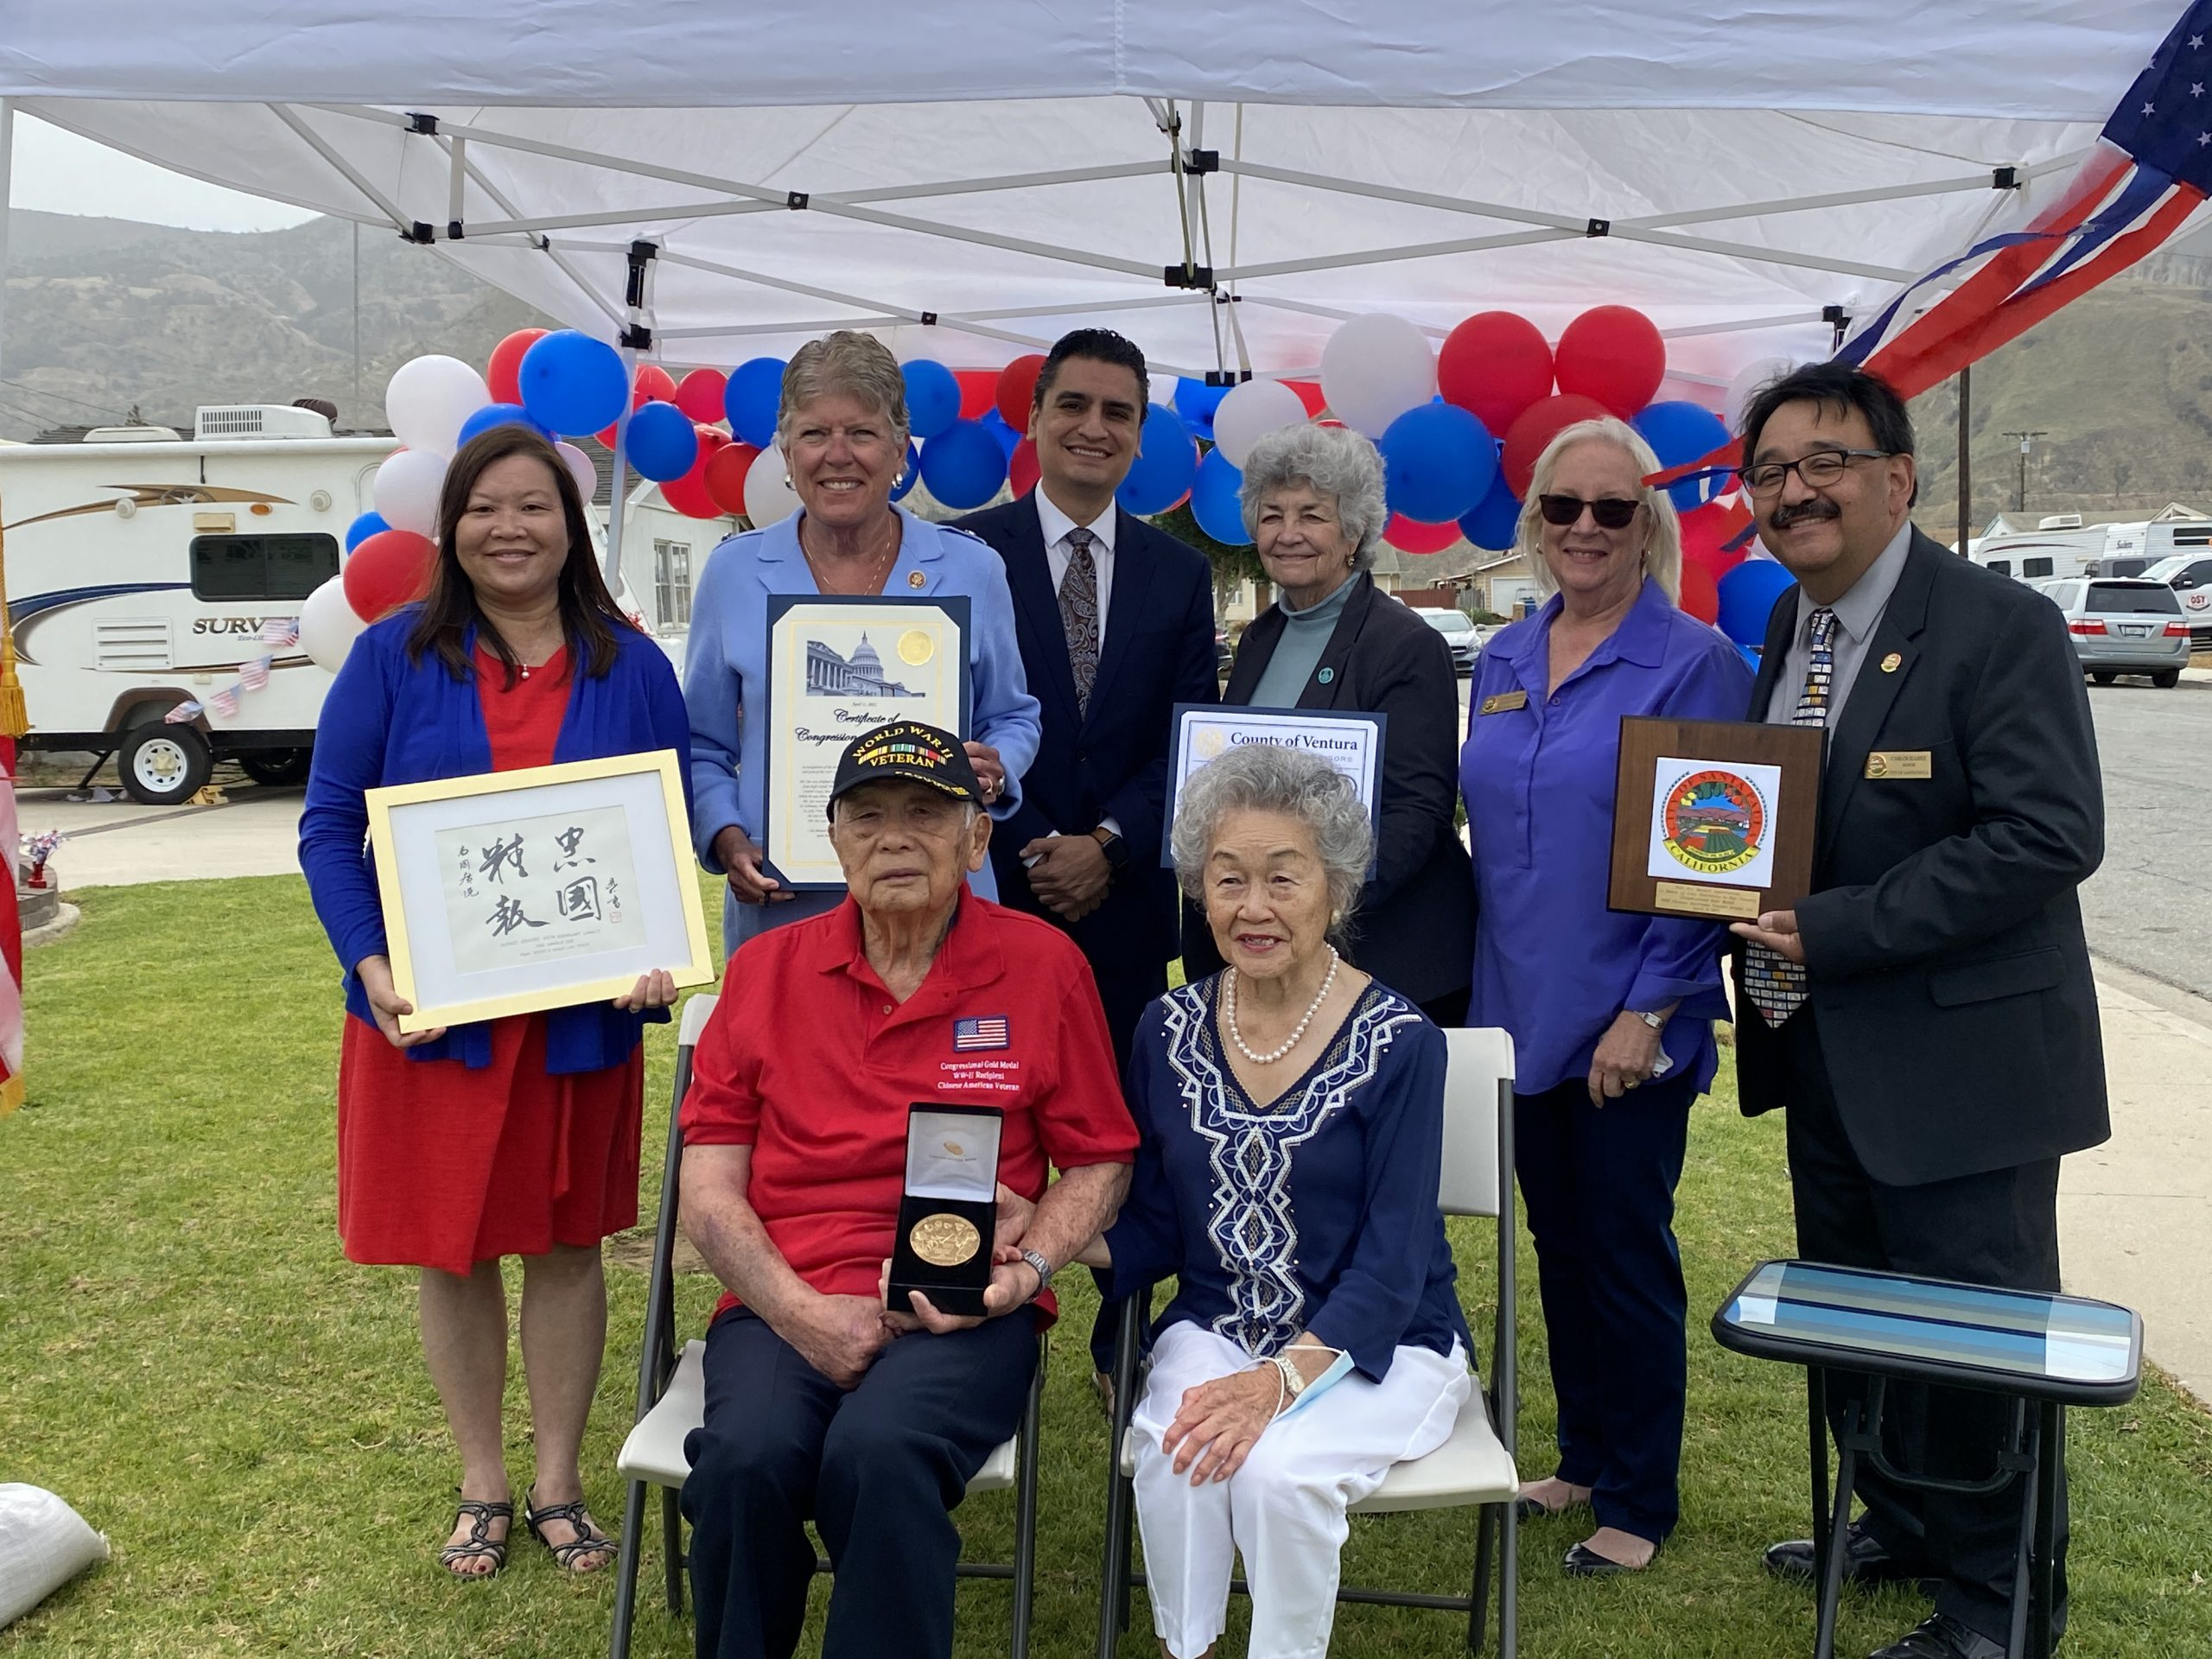 94-year-old Arnold Jue was honored with a Congressional Gold Medal earlier this month. He is the last living Chinese American WWII veteran in Ventura County